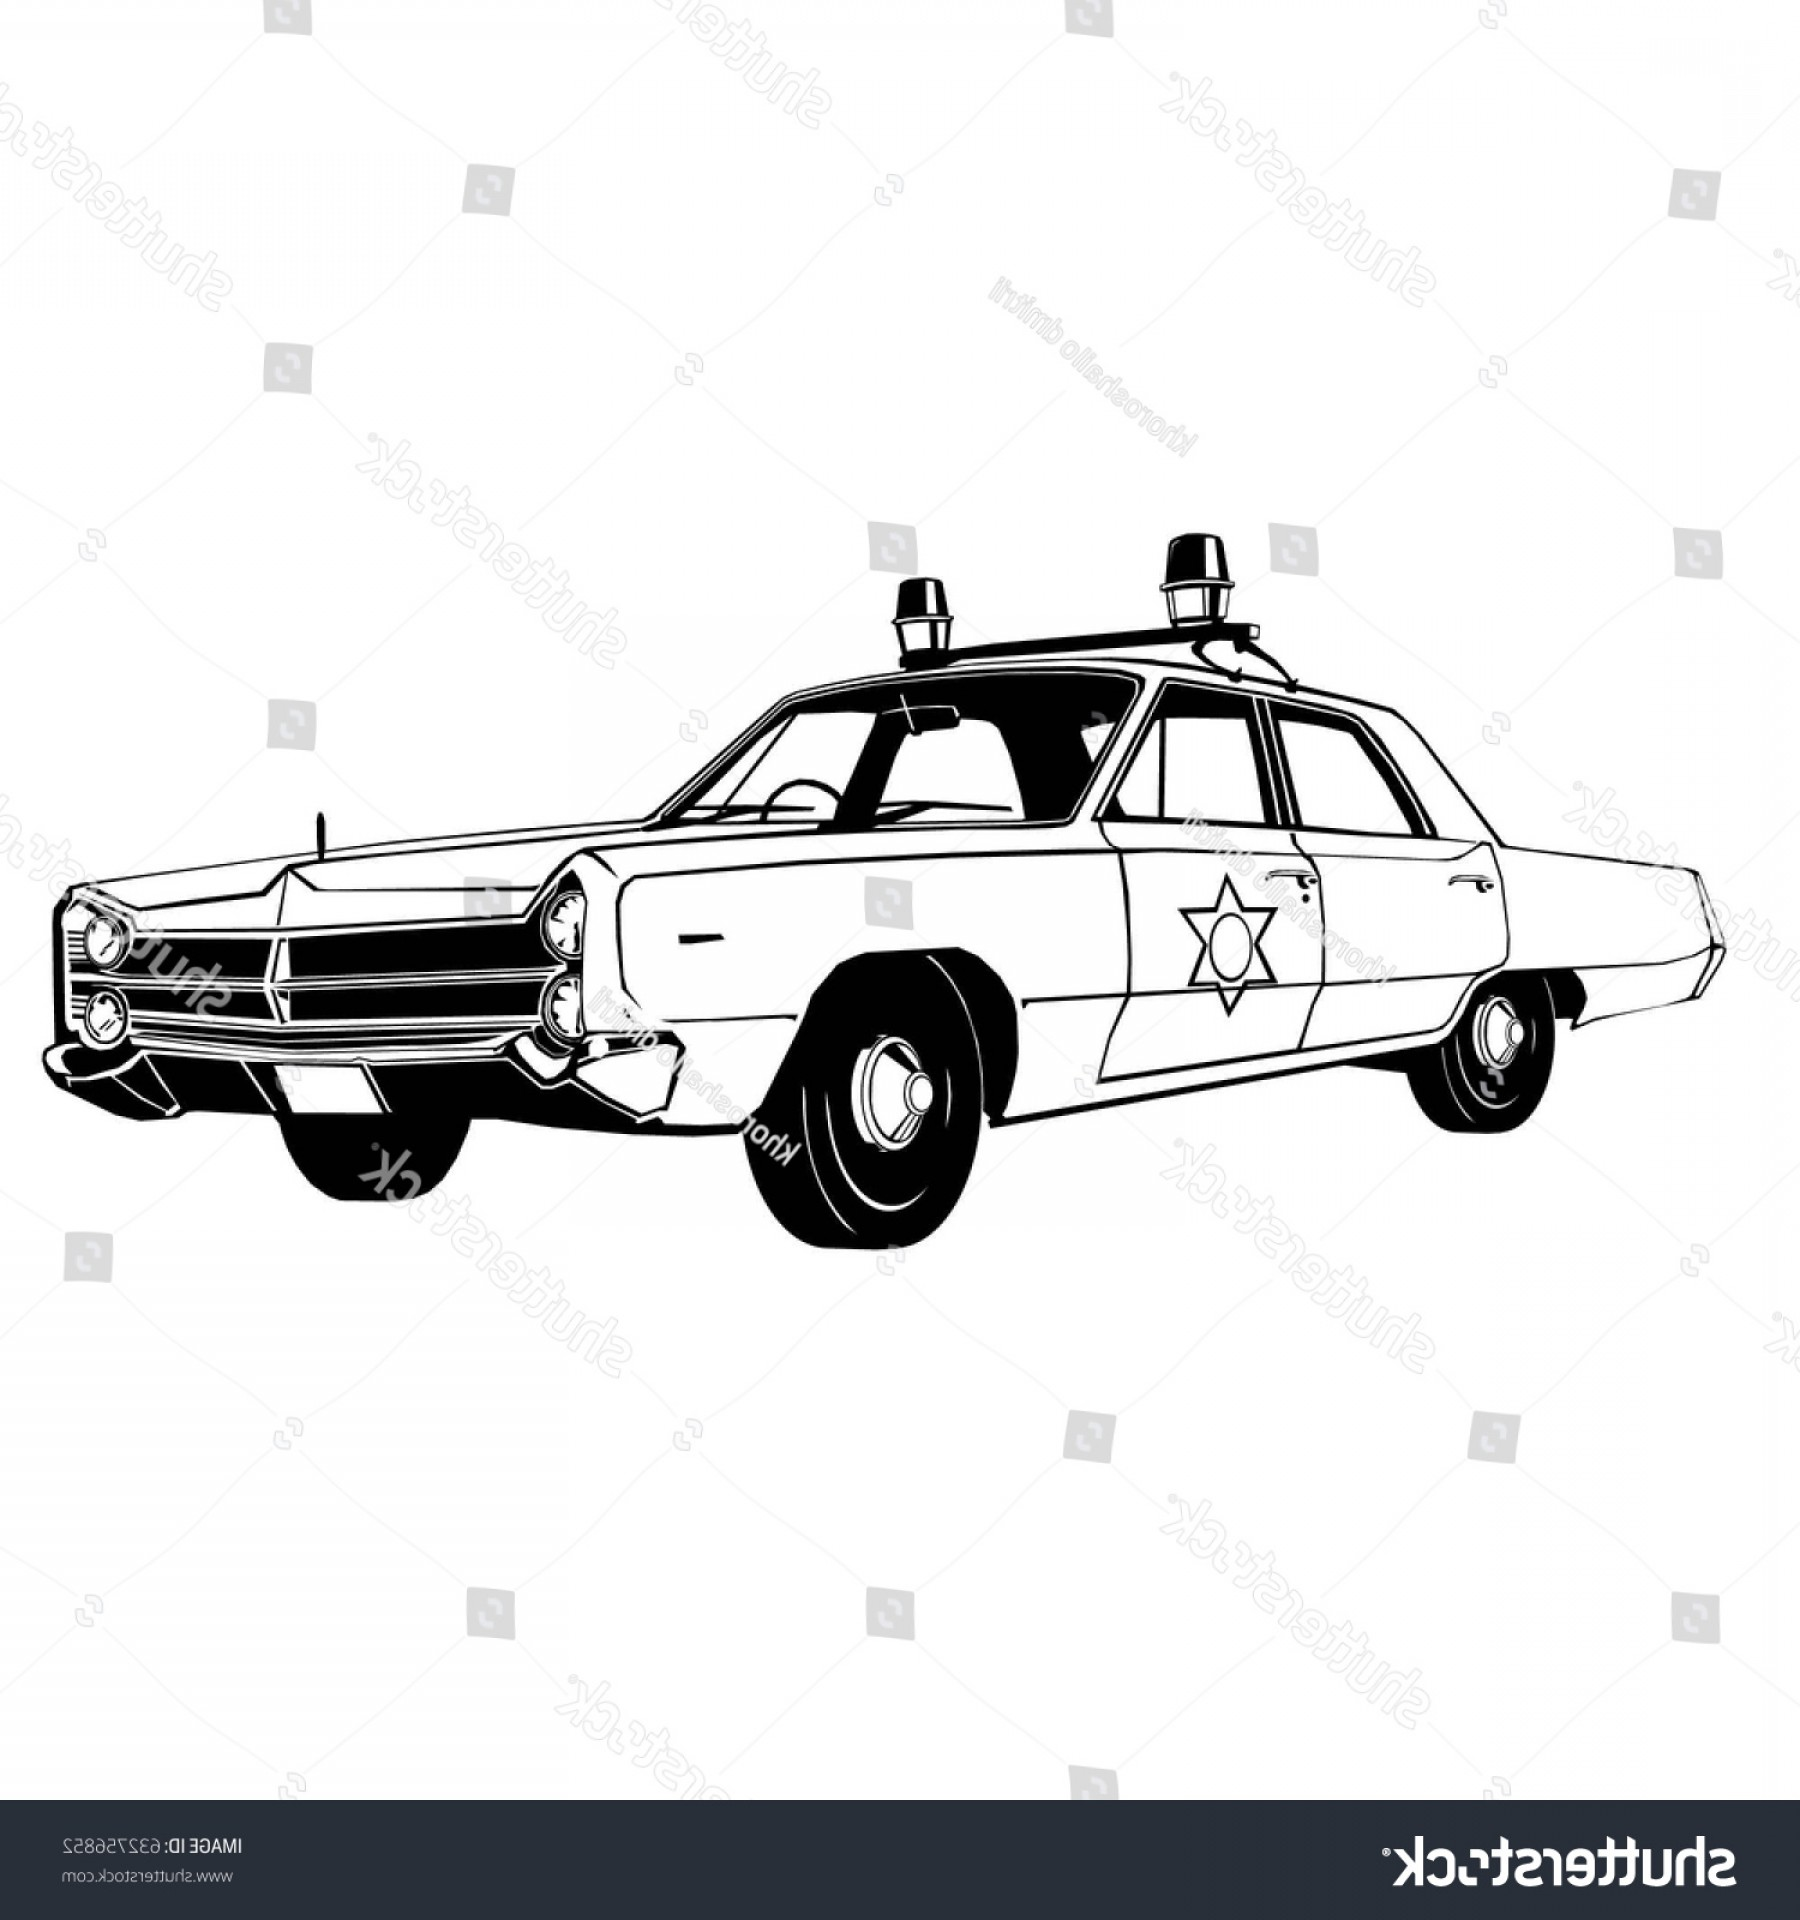 Custom Police Cars Vector: Vintage Police Car Vector Drawing Graphic